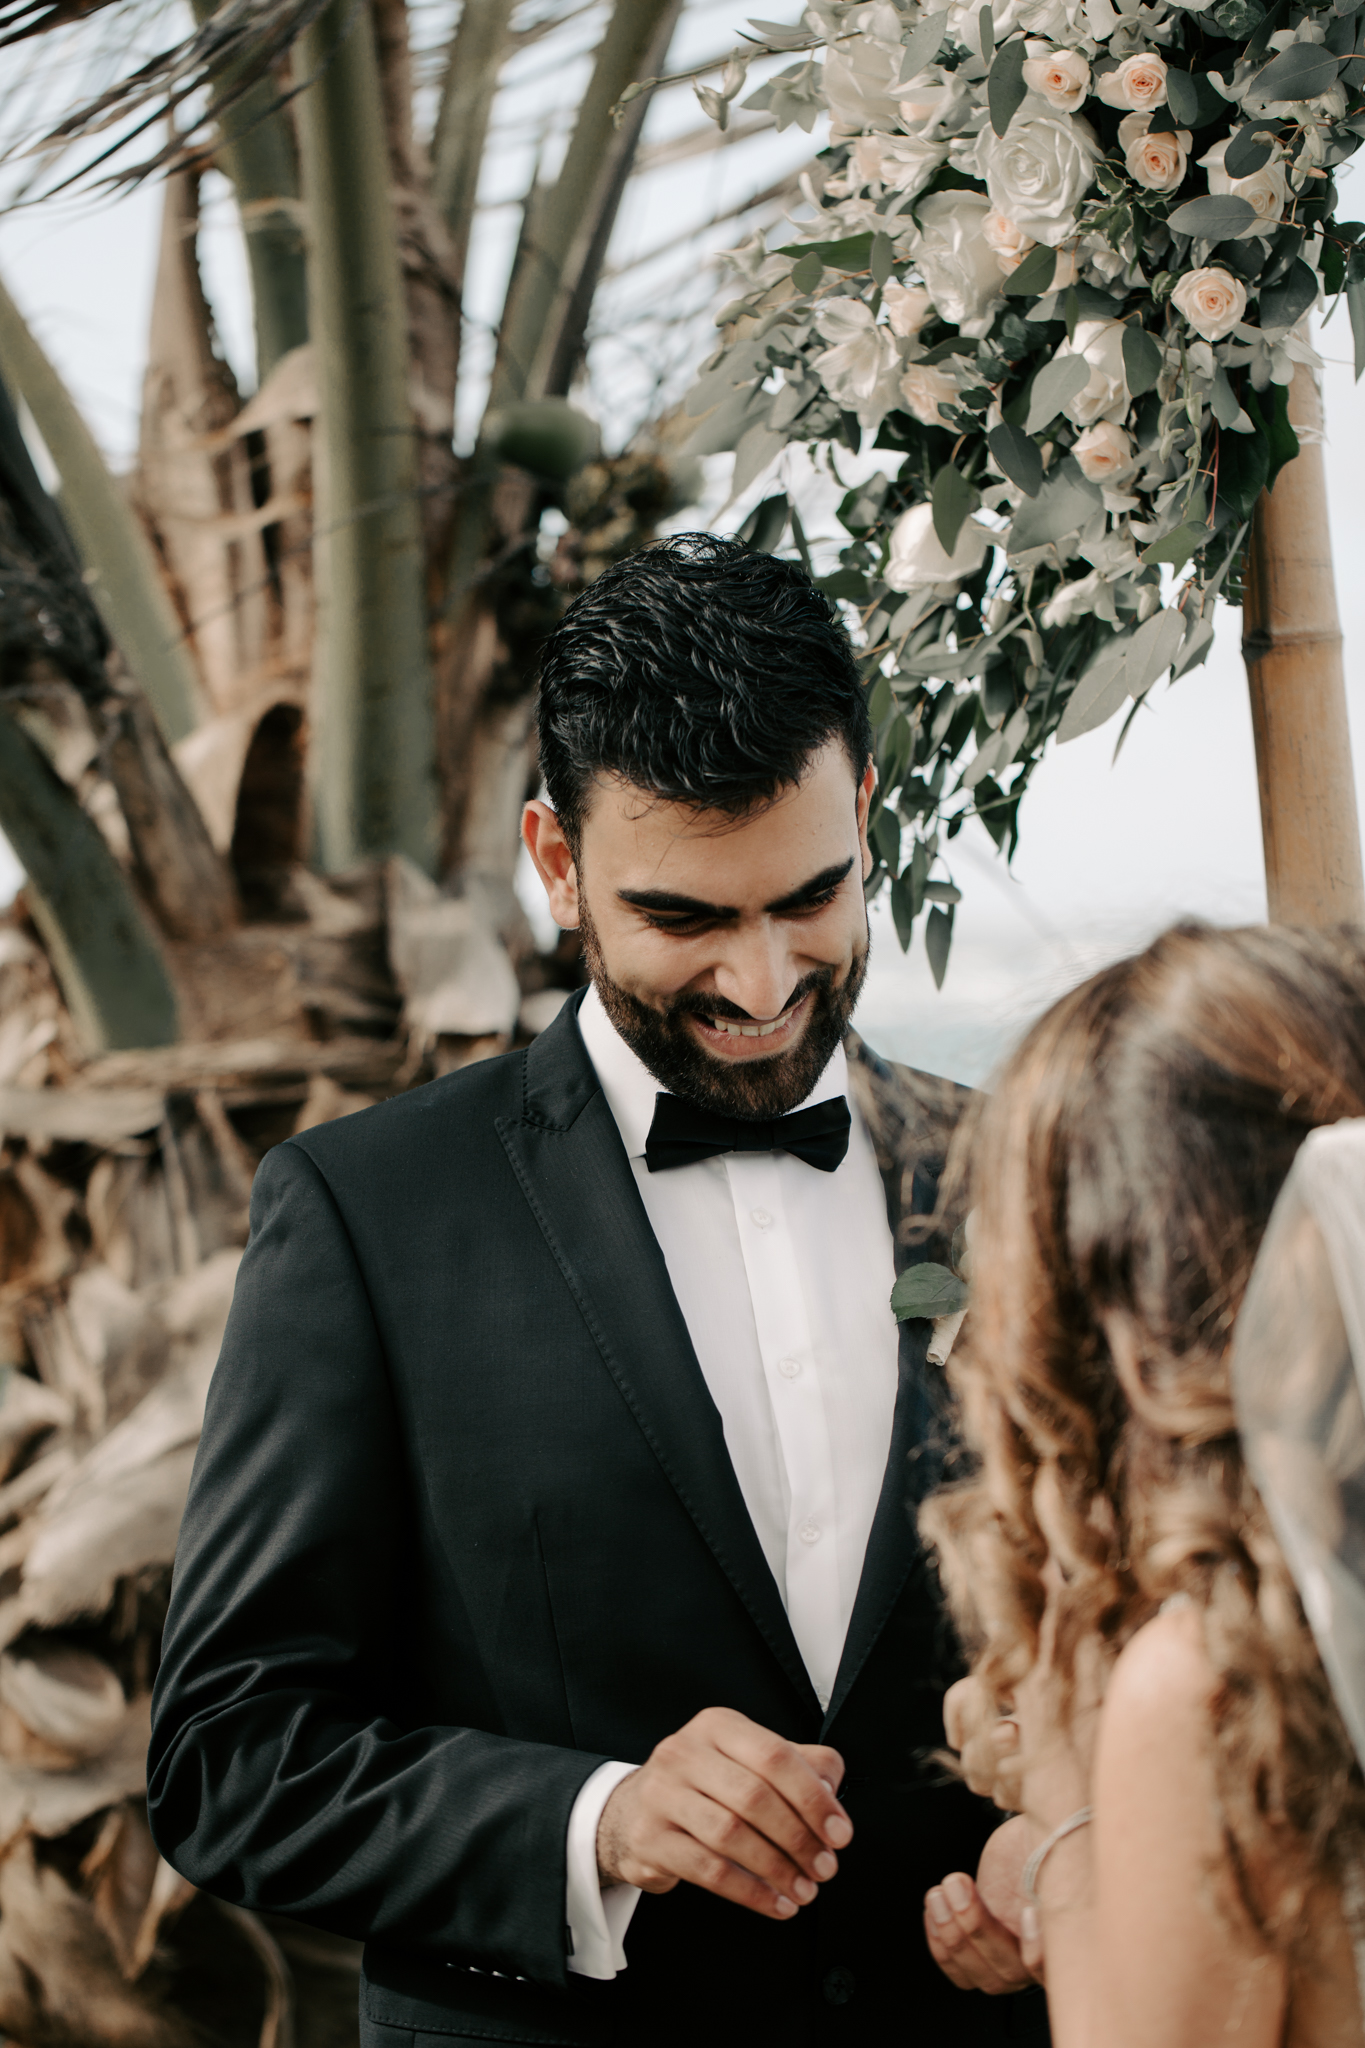 Groom putting ring on